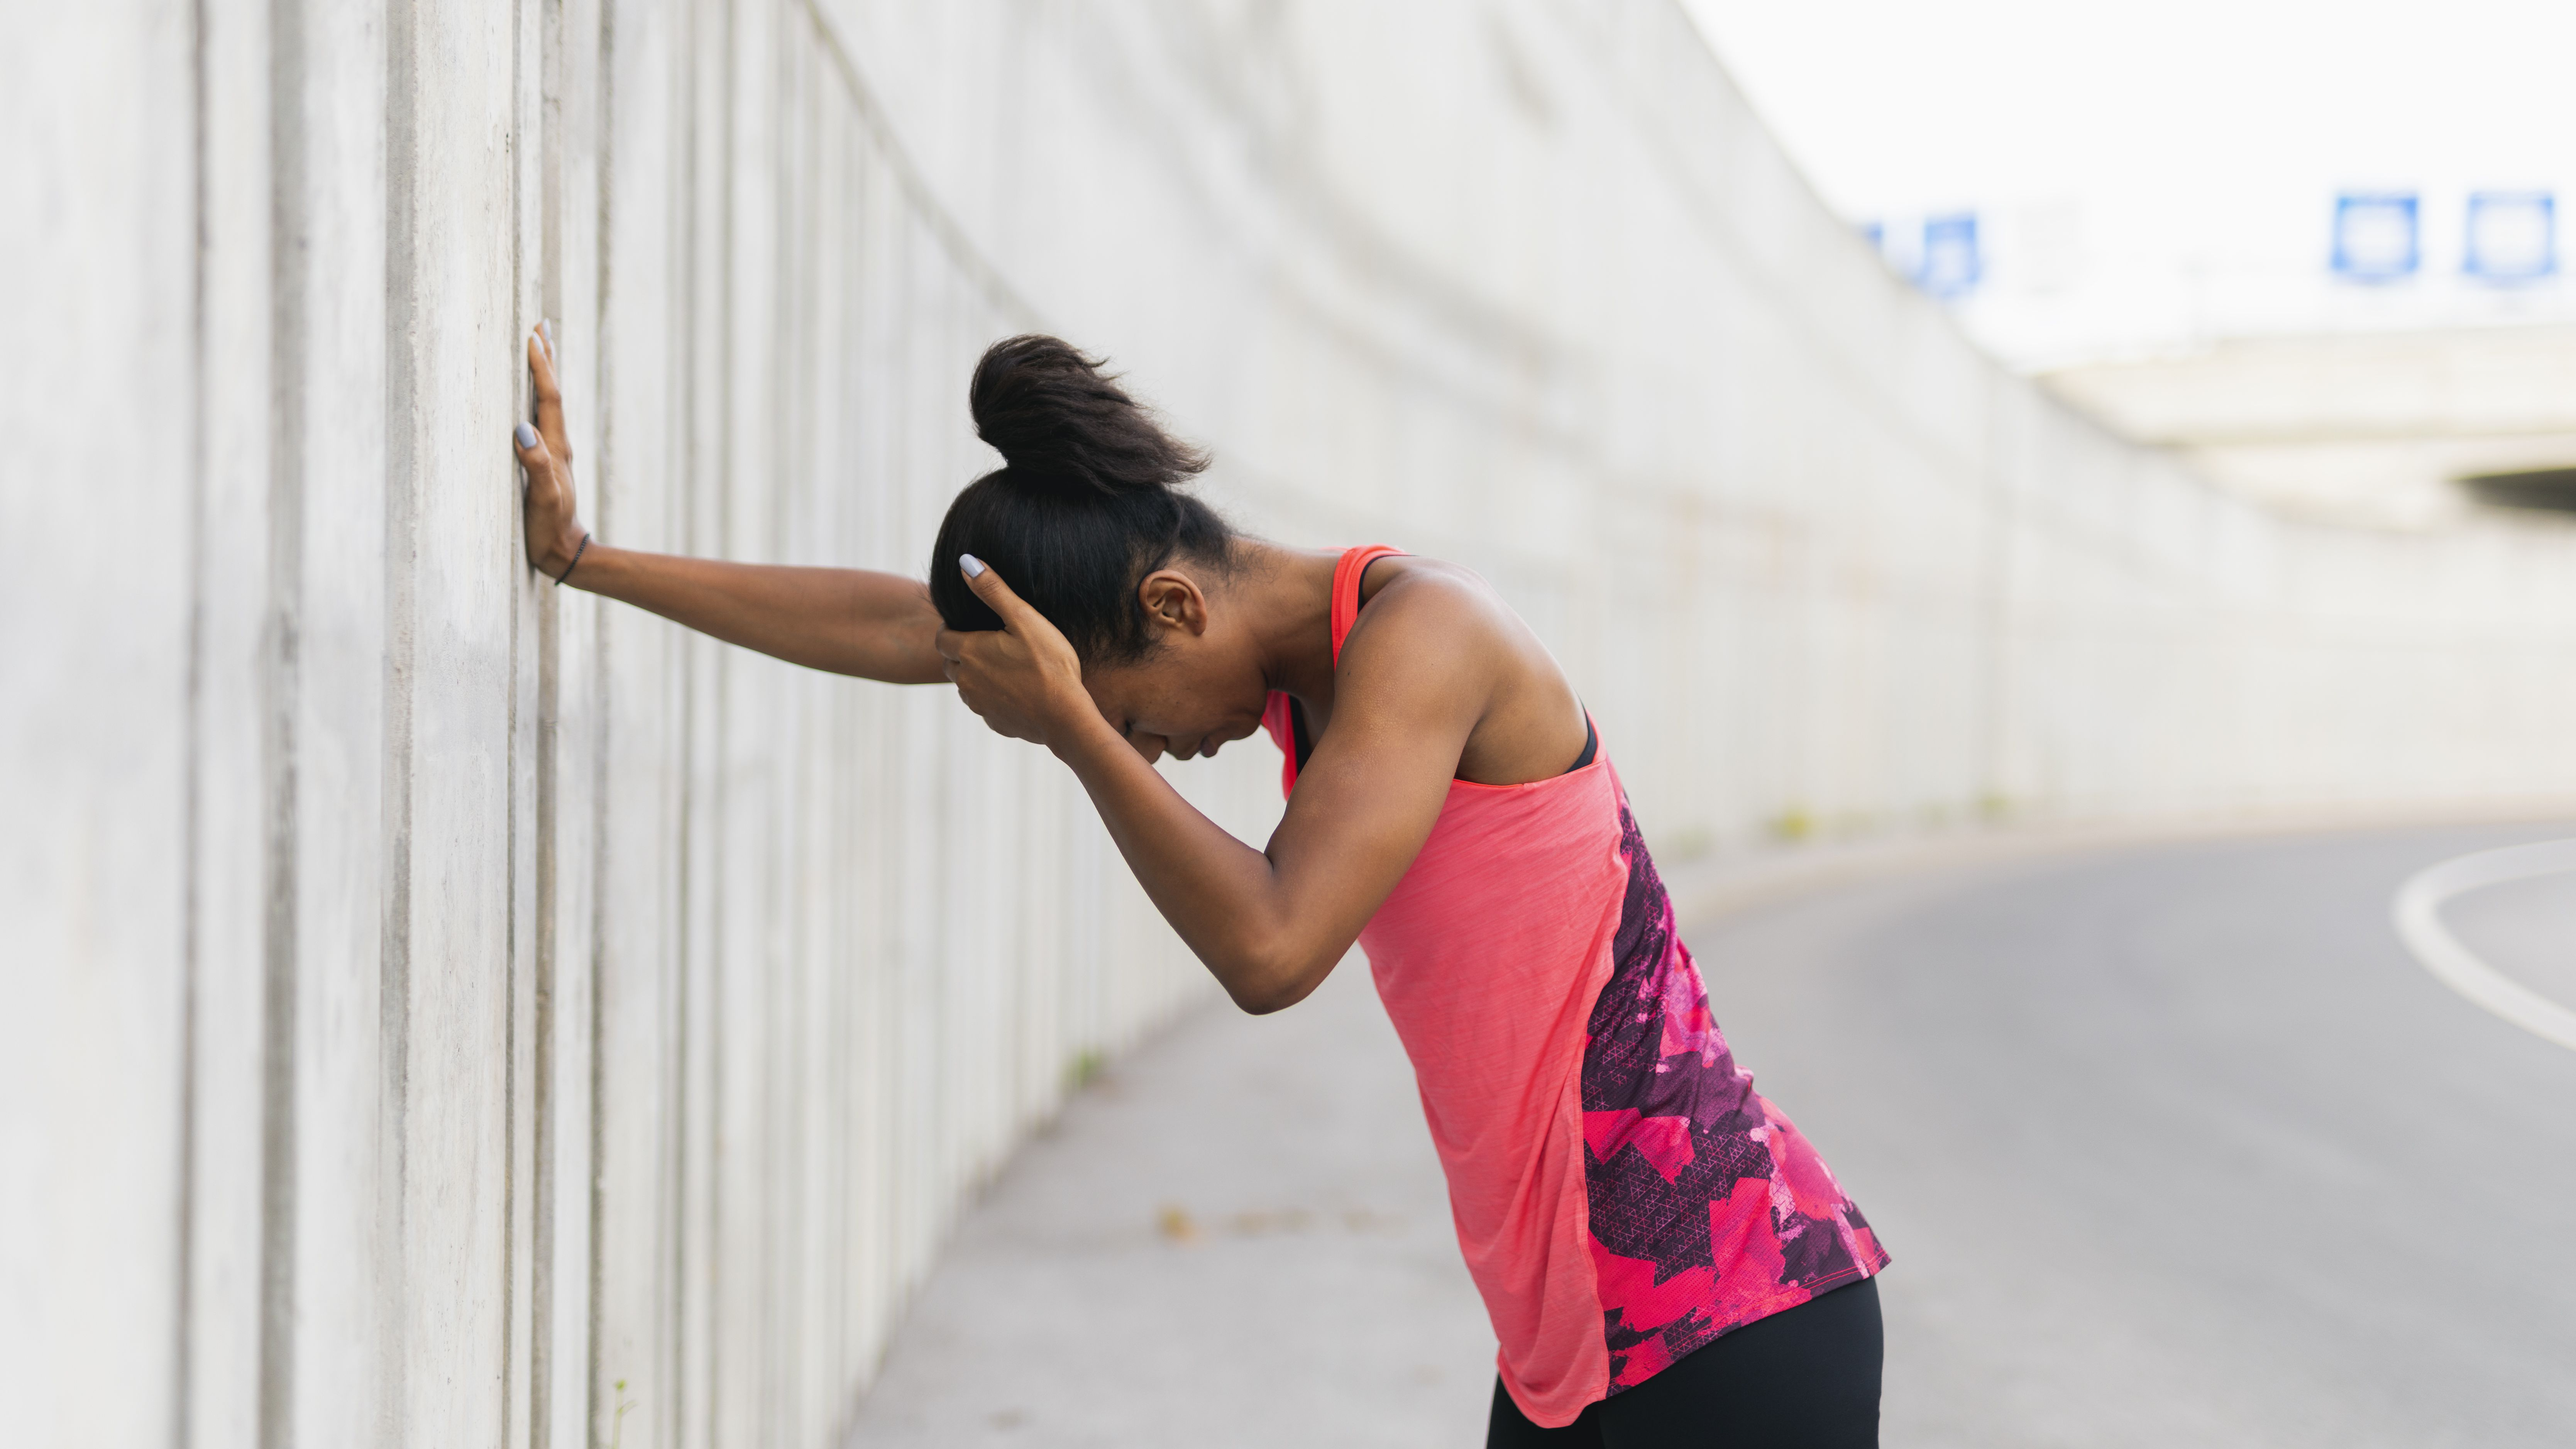 What Causes Dizziness After Exercise?